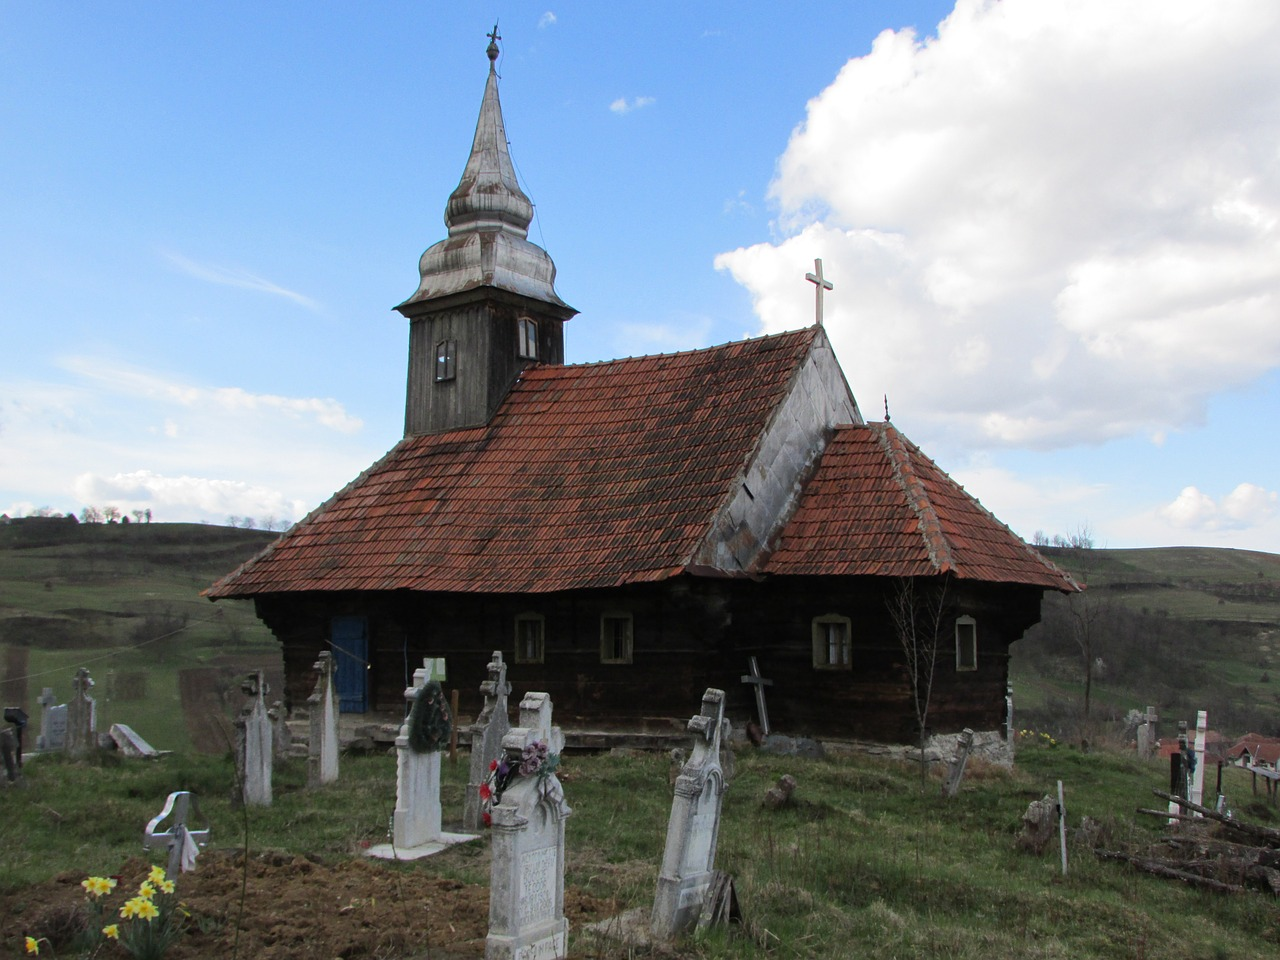 Transylvania Wooden Church